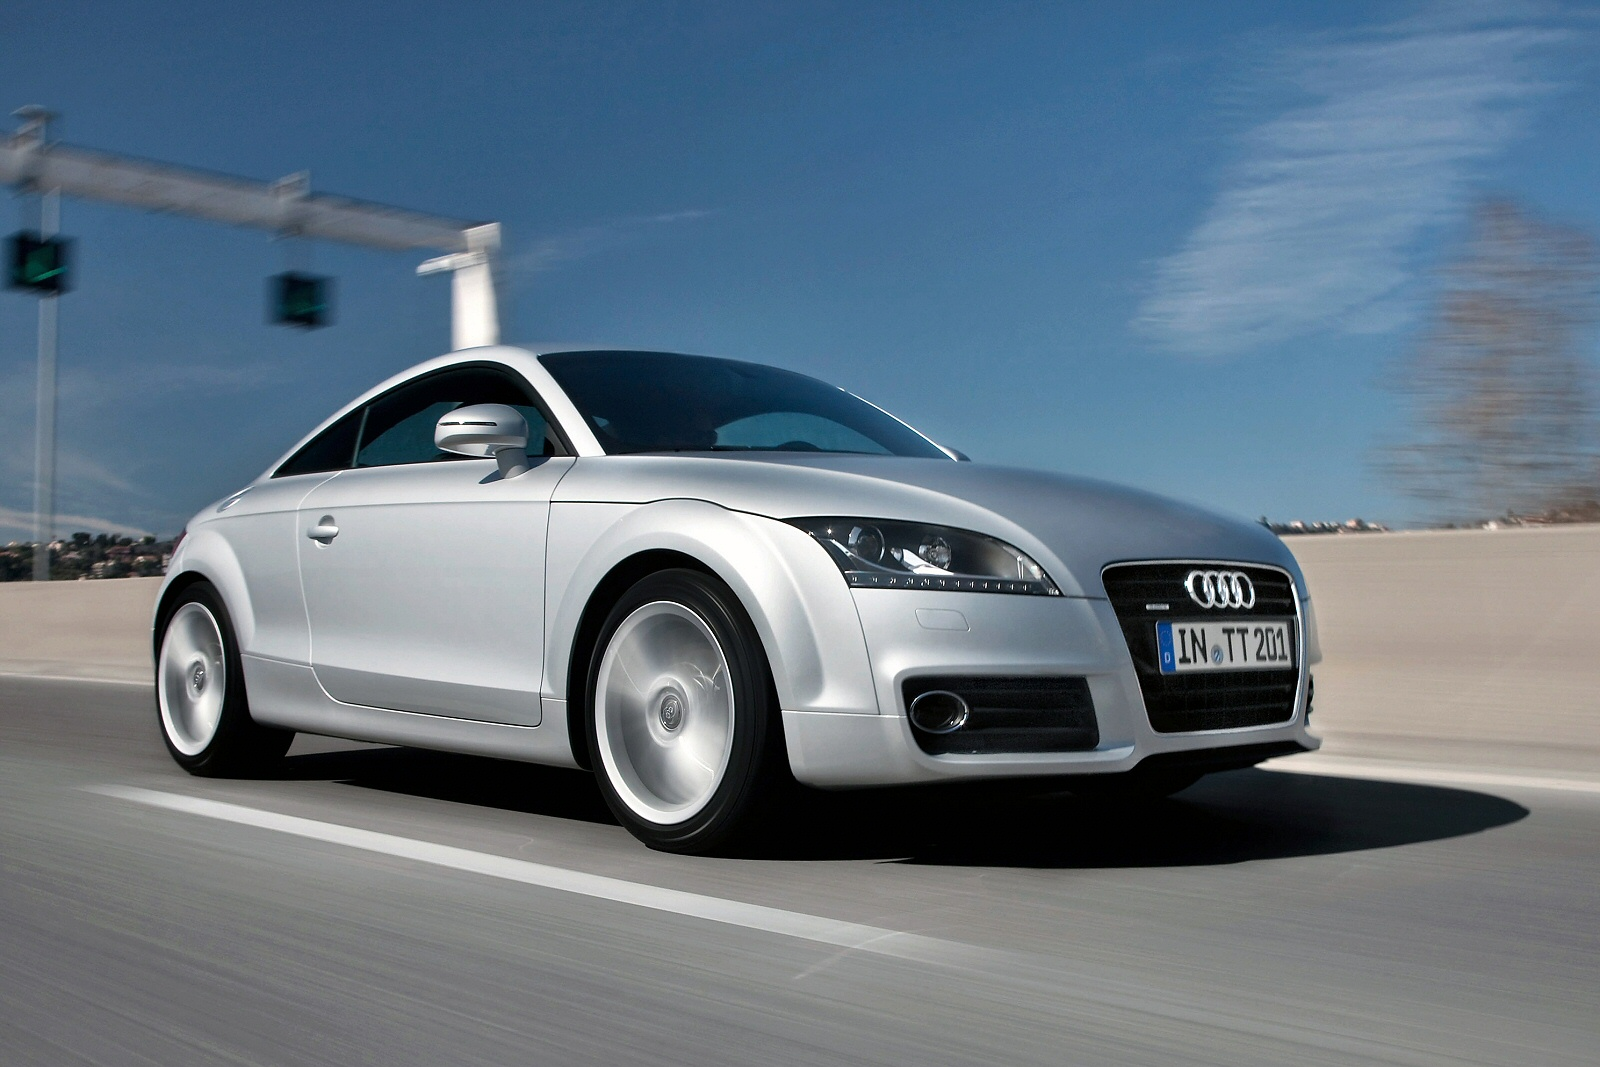 Image two of a Audi TT Coupe